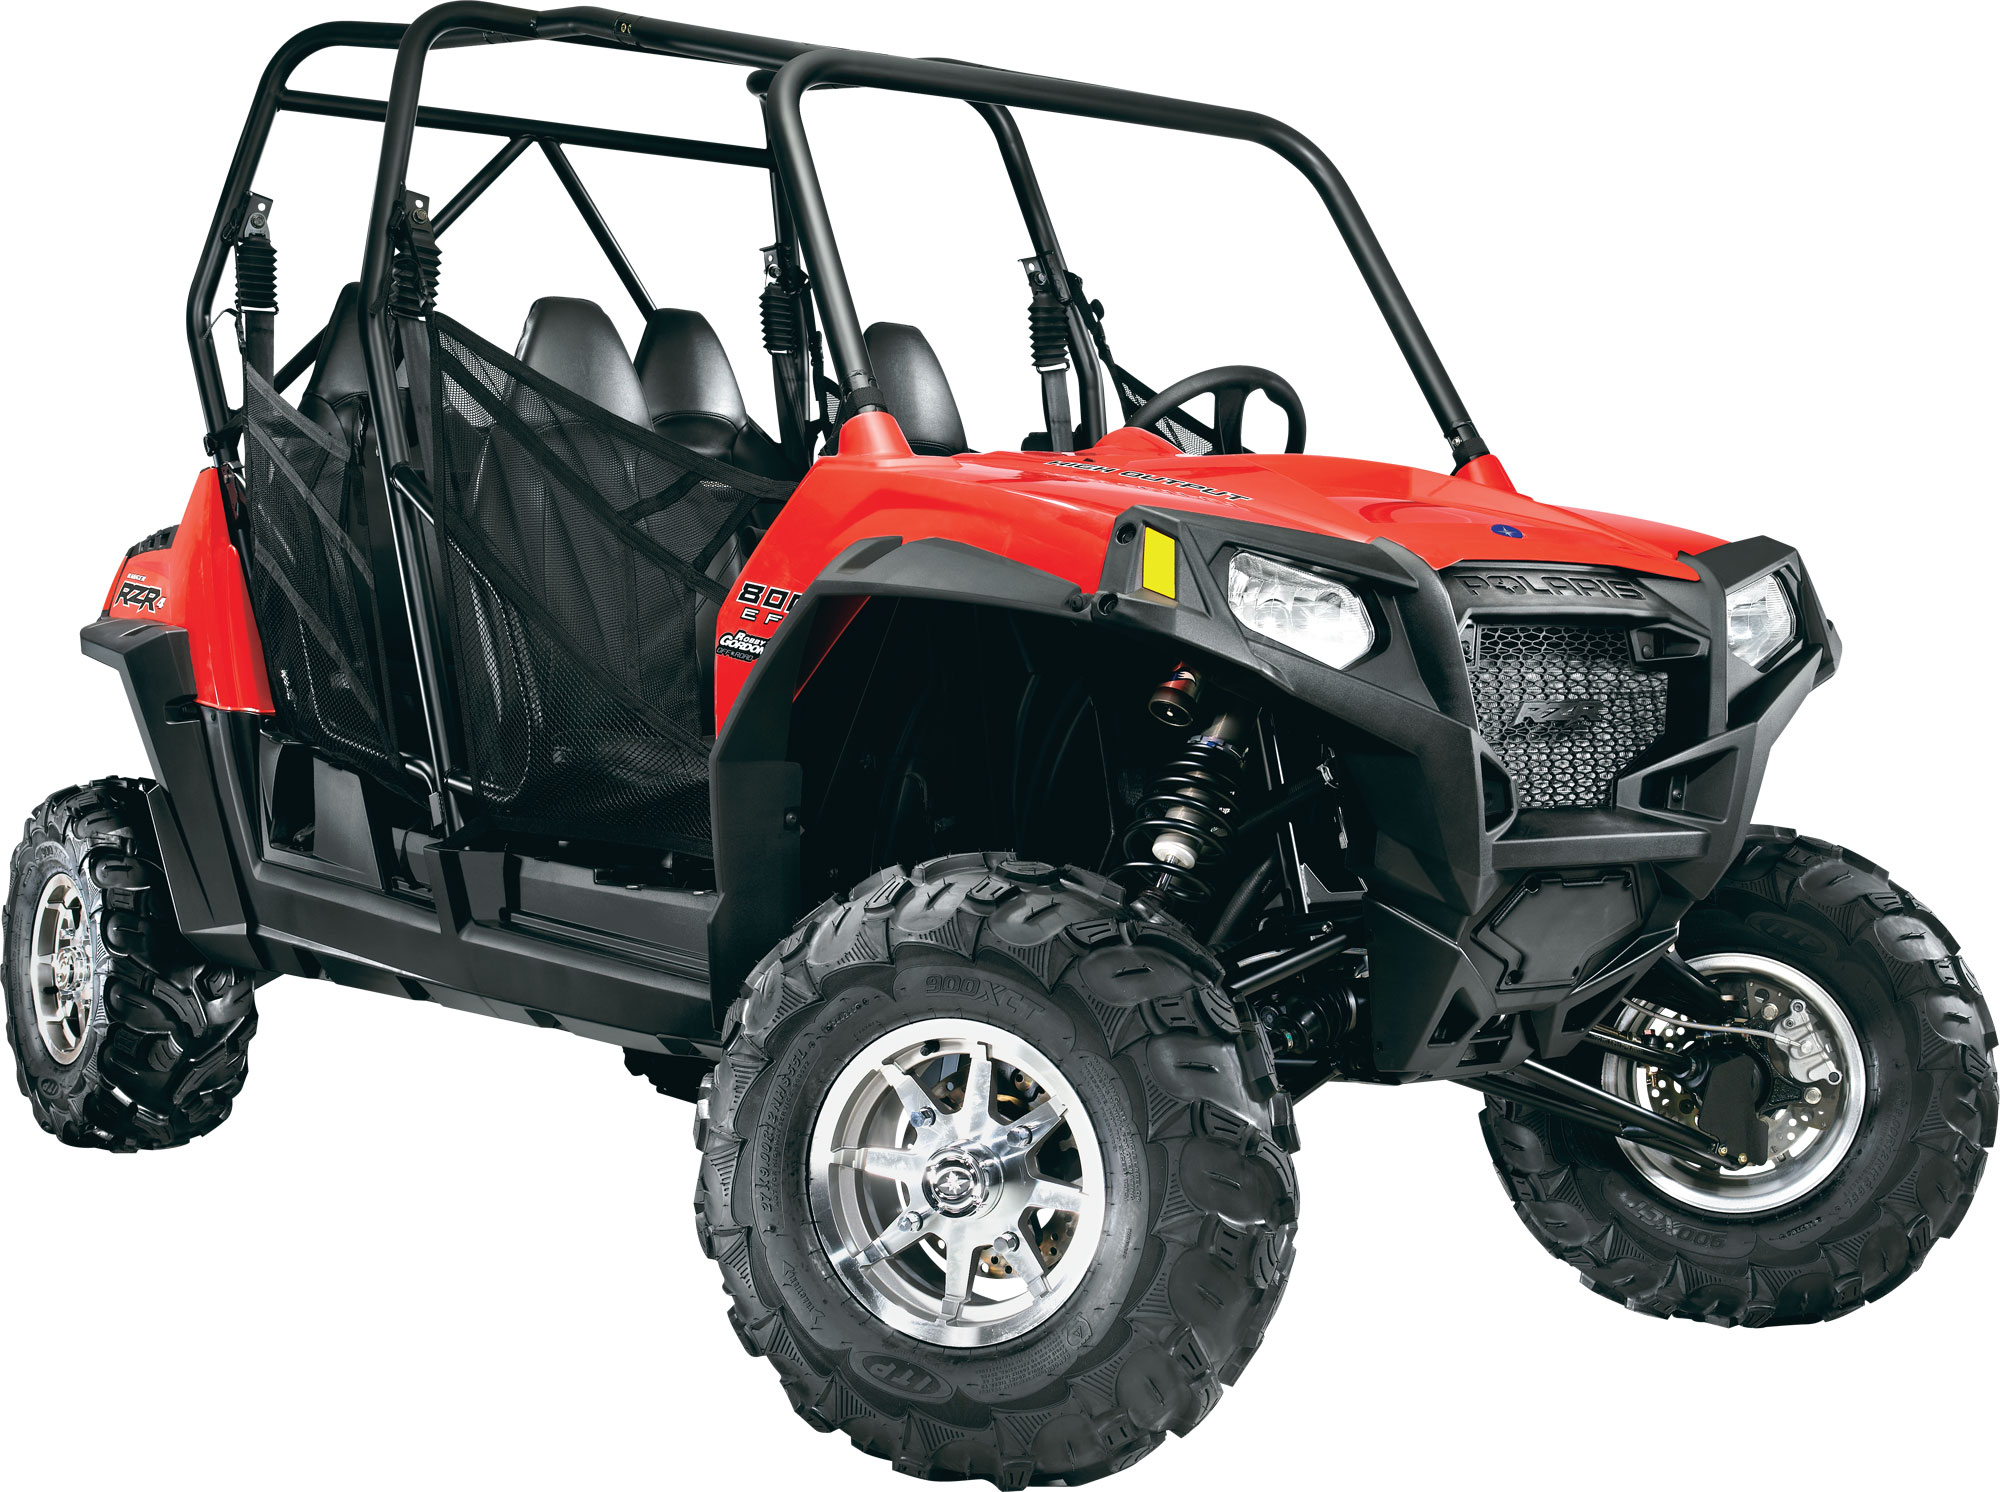 Polaris Rzr 4 800 Robby Gordon Edition Specs